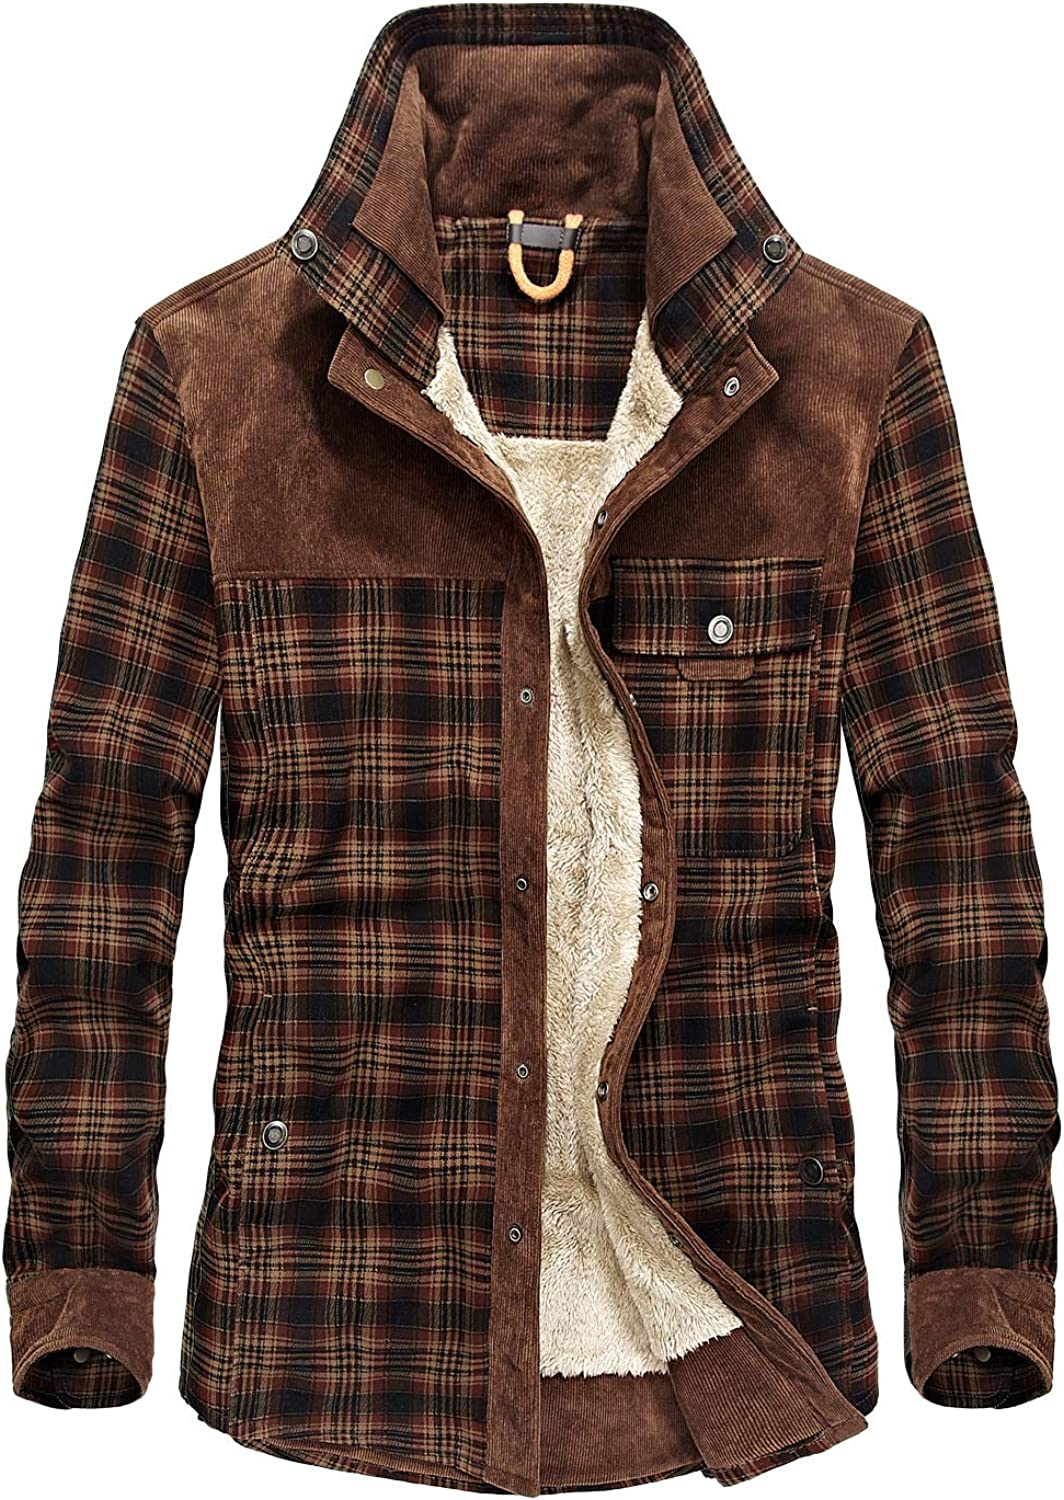 Mr.Stream Men's Outdoor Casual Vintage Long Sleeve Plaid Flannel Button Down Shirt Jacket